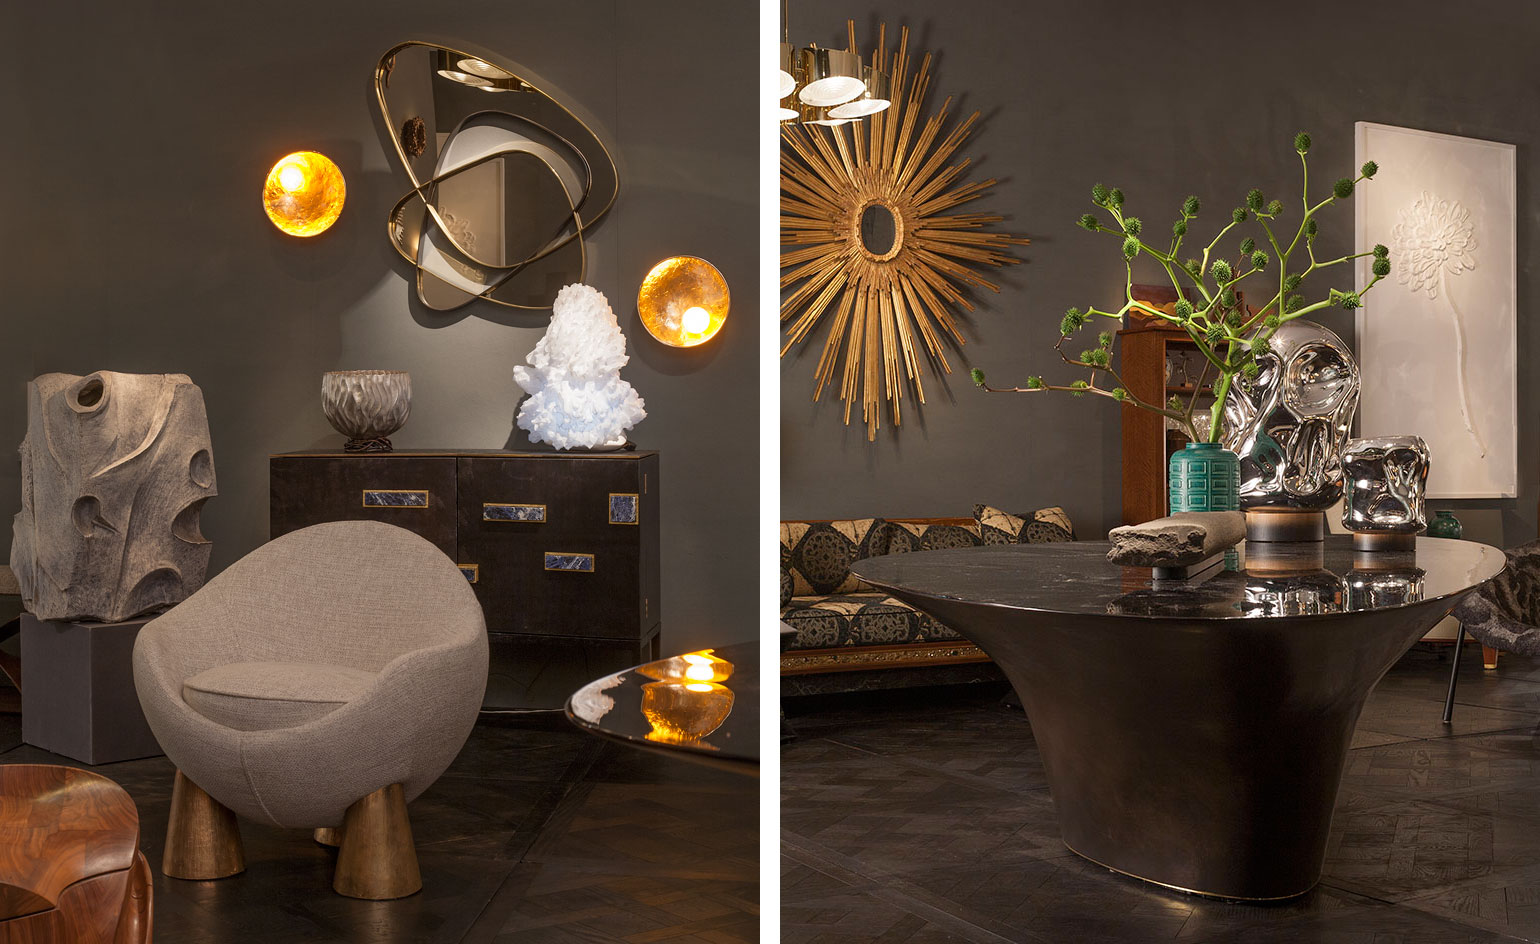 Get Ready for the Exceptional Salon Art + Design NY 2018 - Maison Gerard salon art + design Get Ready for the Exceptional Salon Art + Design NY 2018 Get Ready for the Exceptional Salon Art Design NY 2018 Maison Gerard